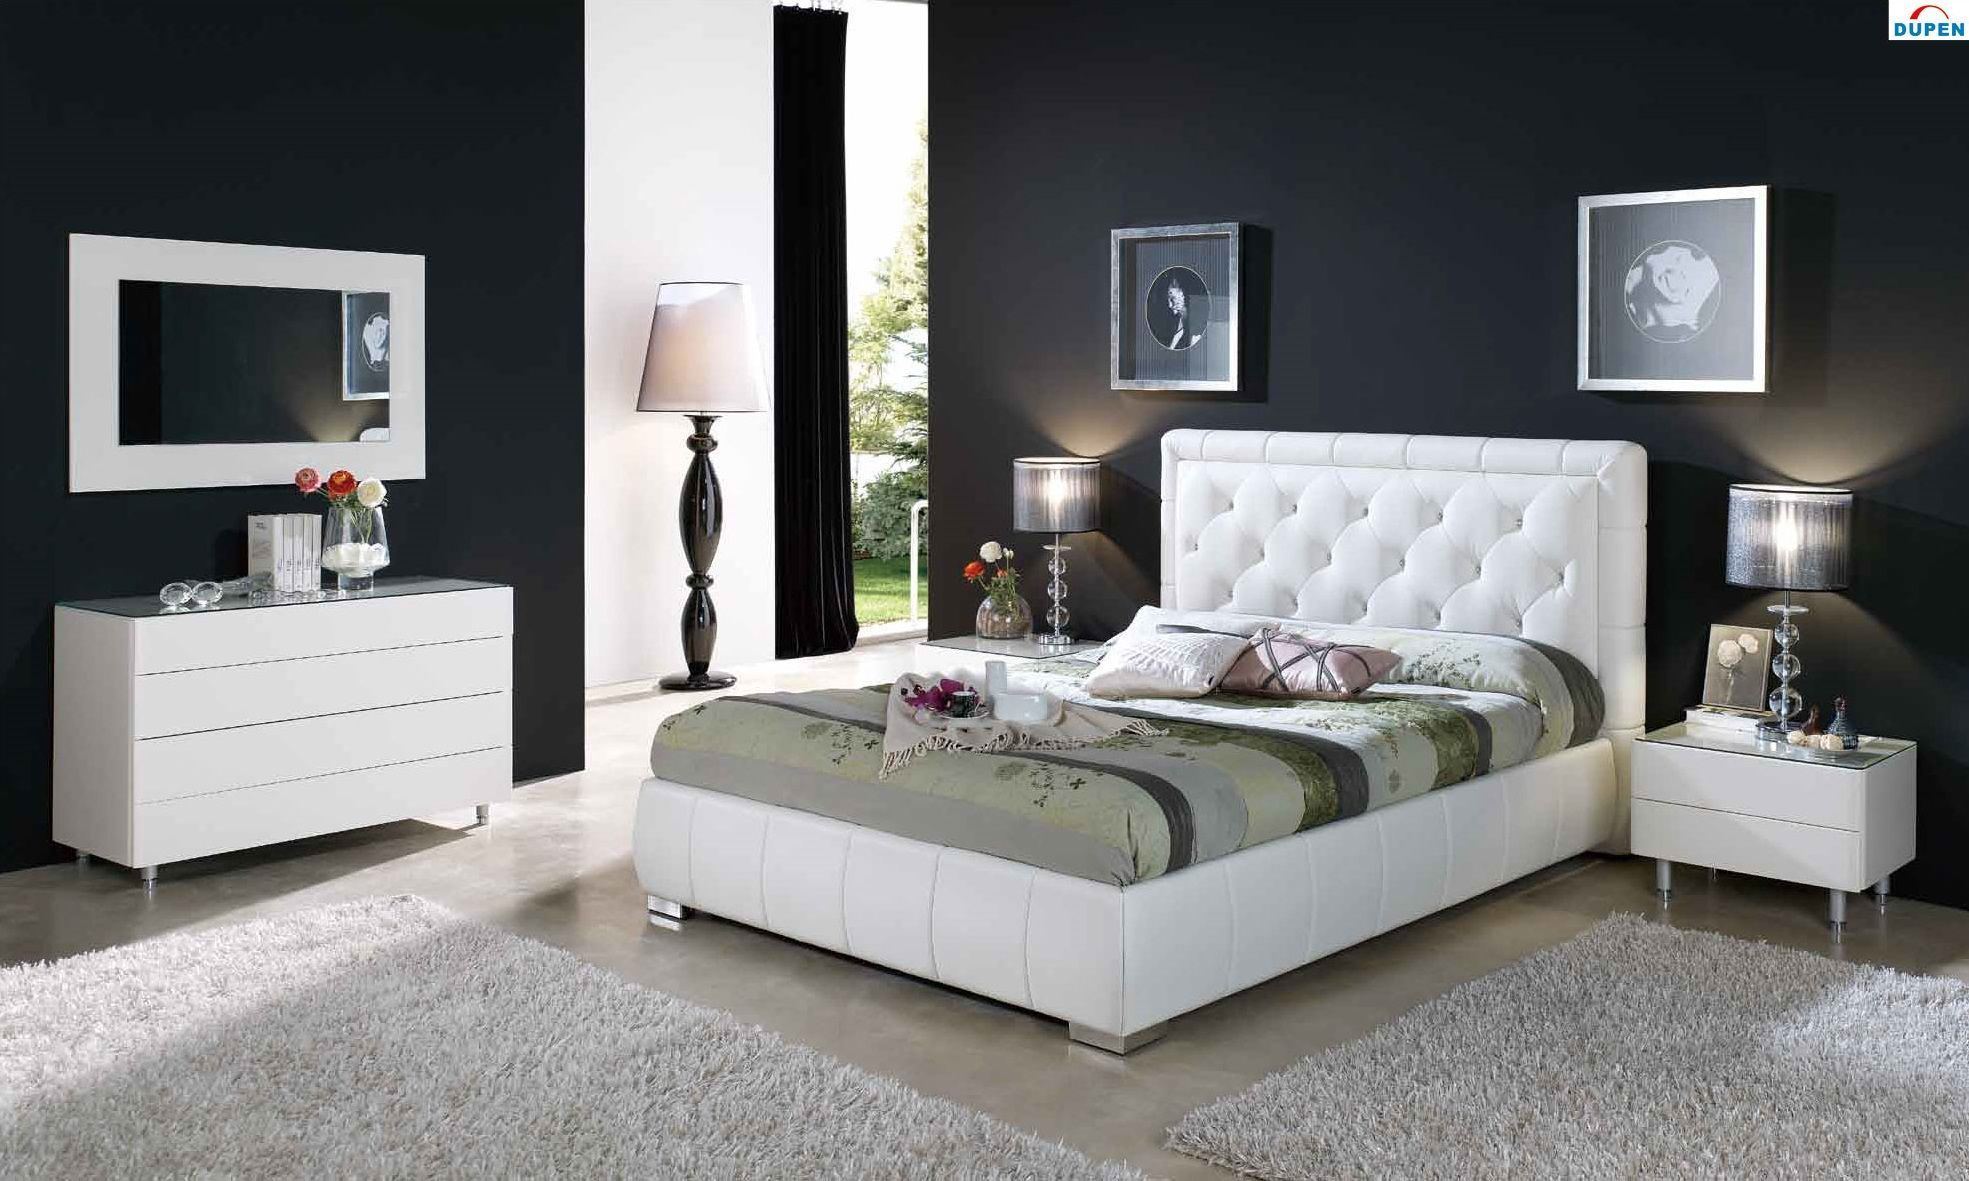 Amazing And Modern Bedroom Furniture Designs Bedrooms Style Set With White  Leatherette Headboard #end2018 #furnituresets #decoration  #bedroomdecoration ...